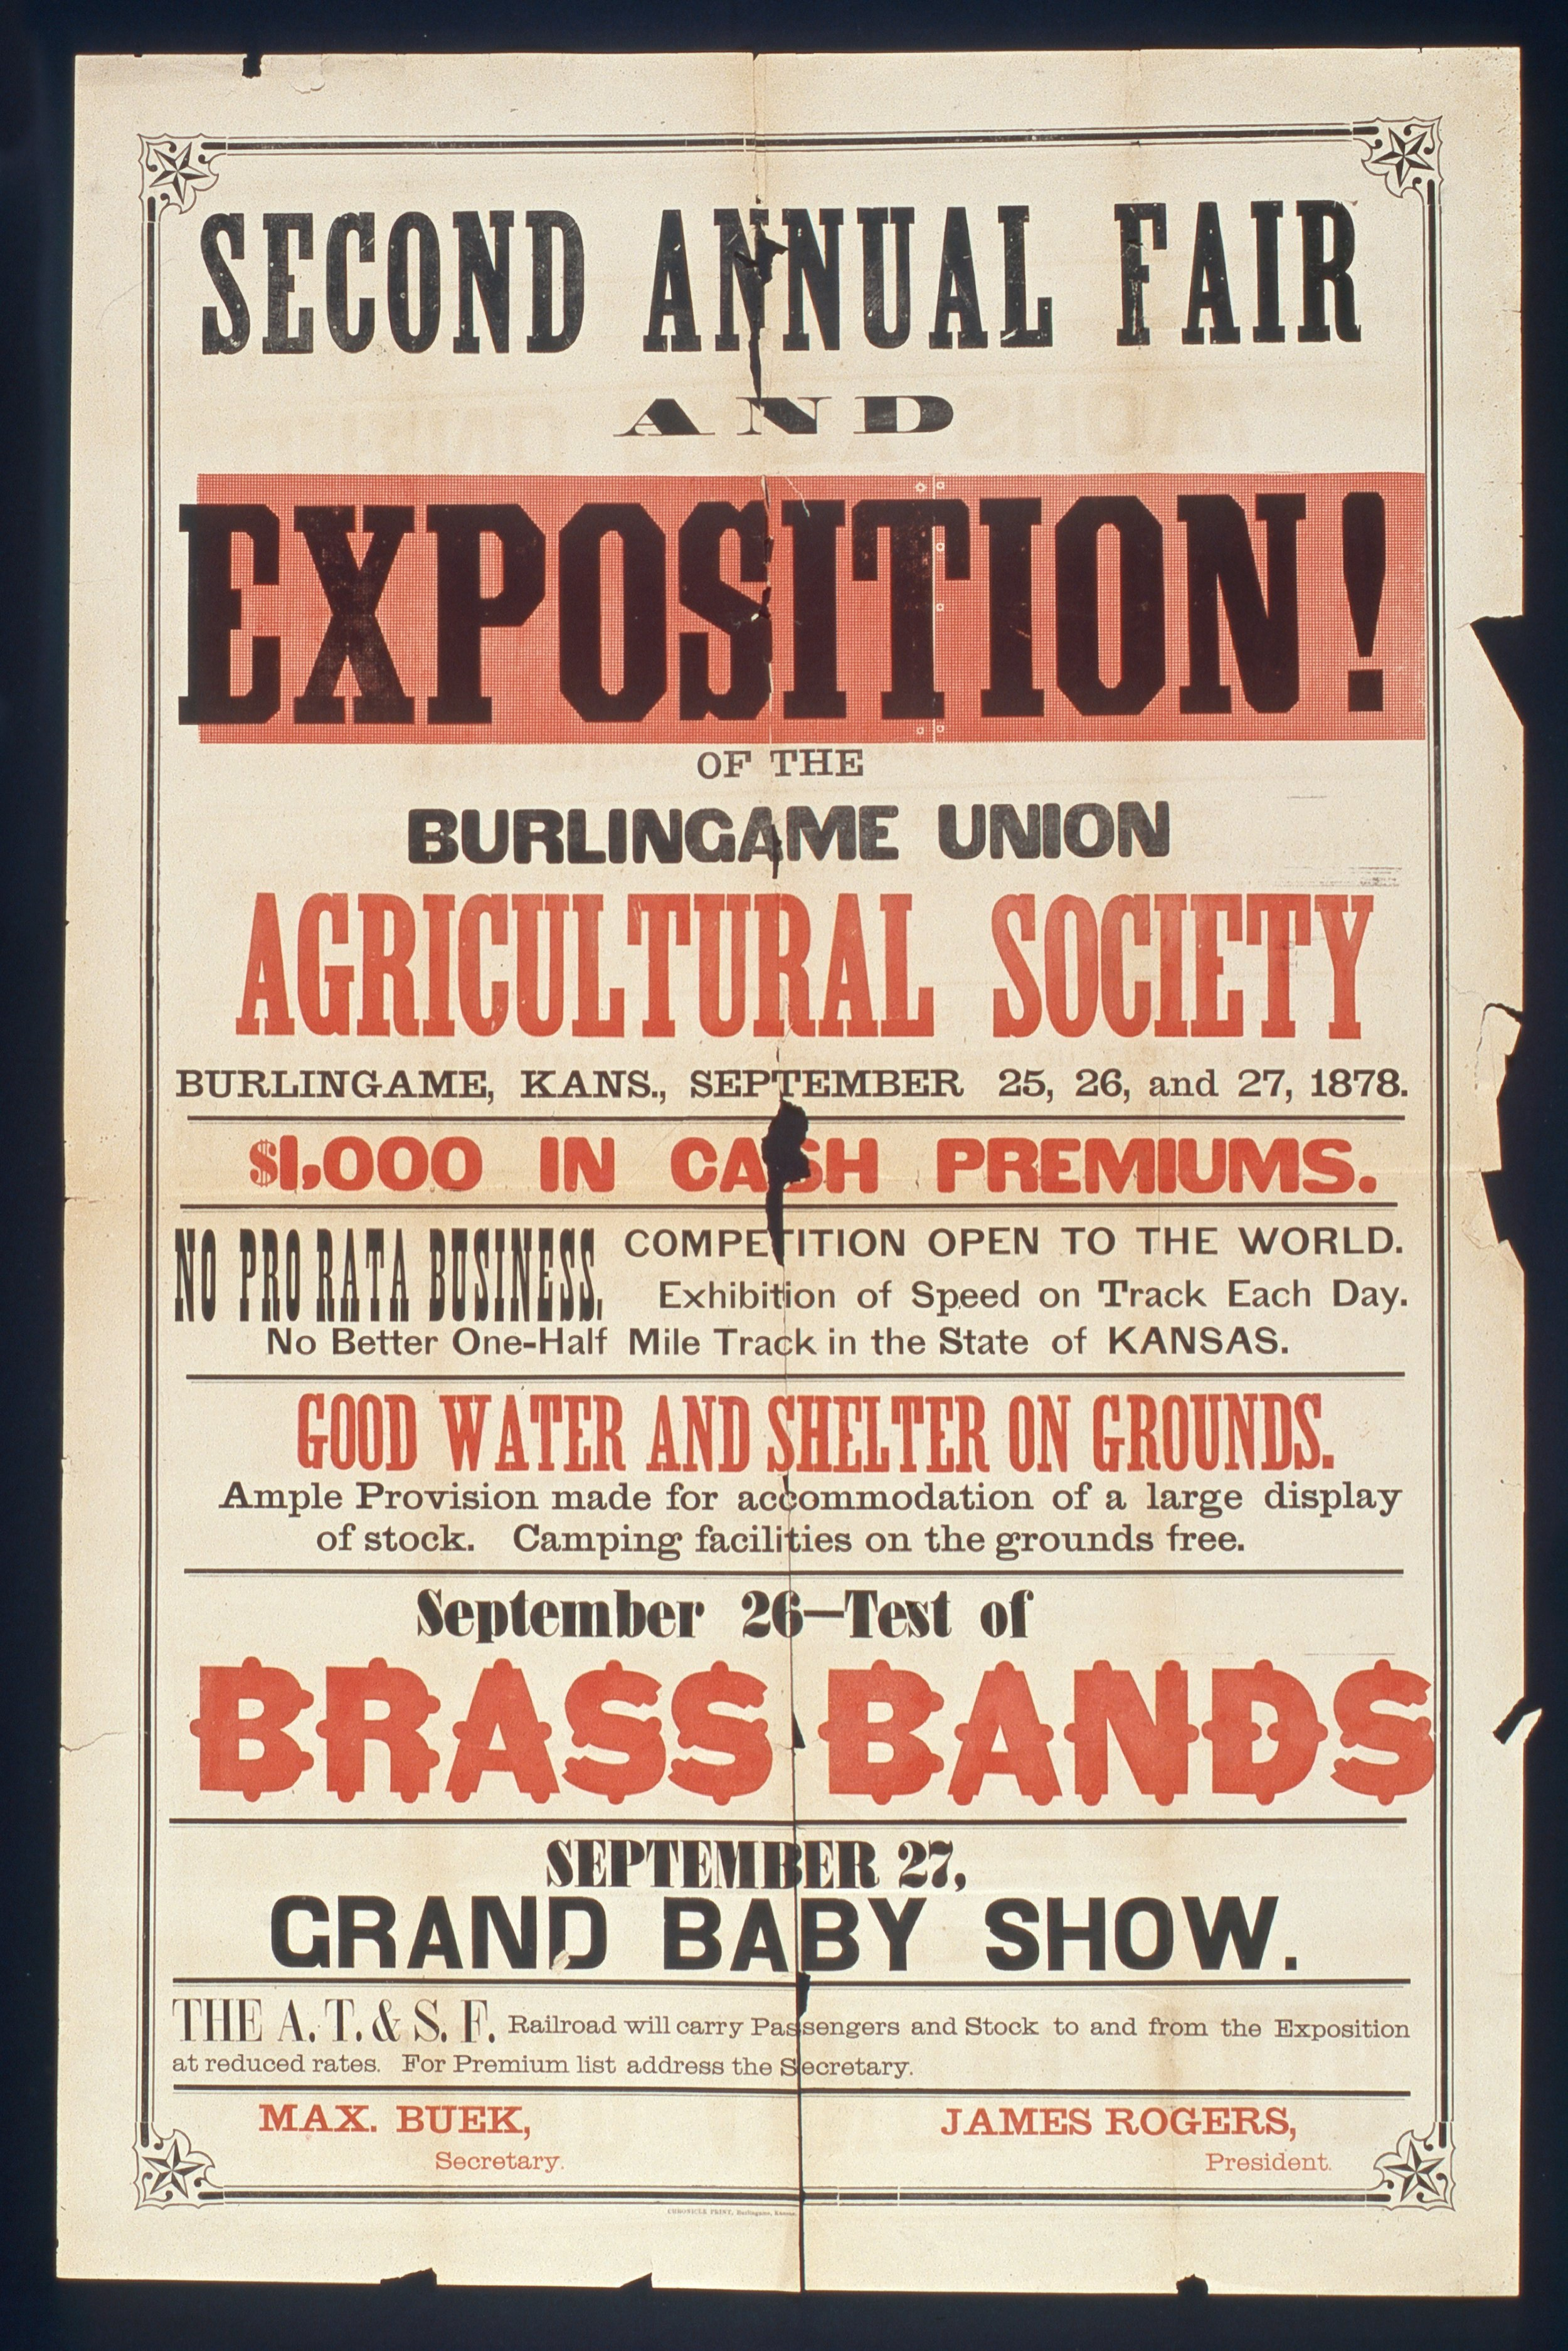 Second annual fair and exposition of the Burlingame Union Agricultural Society